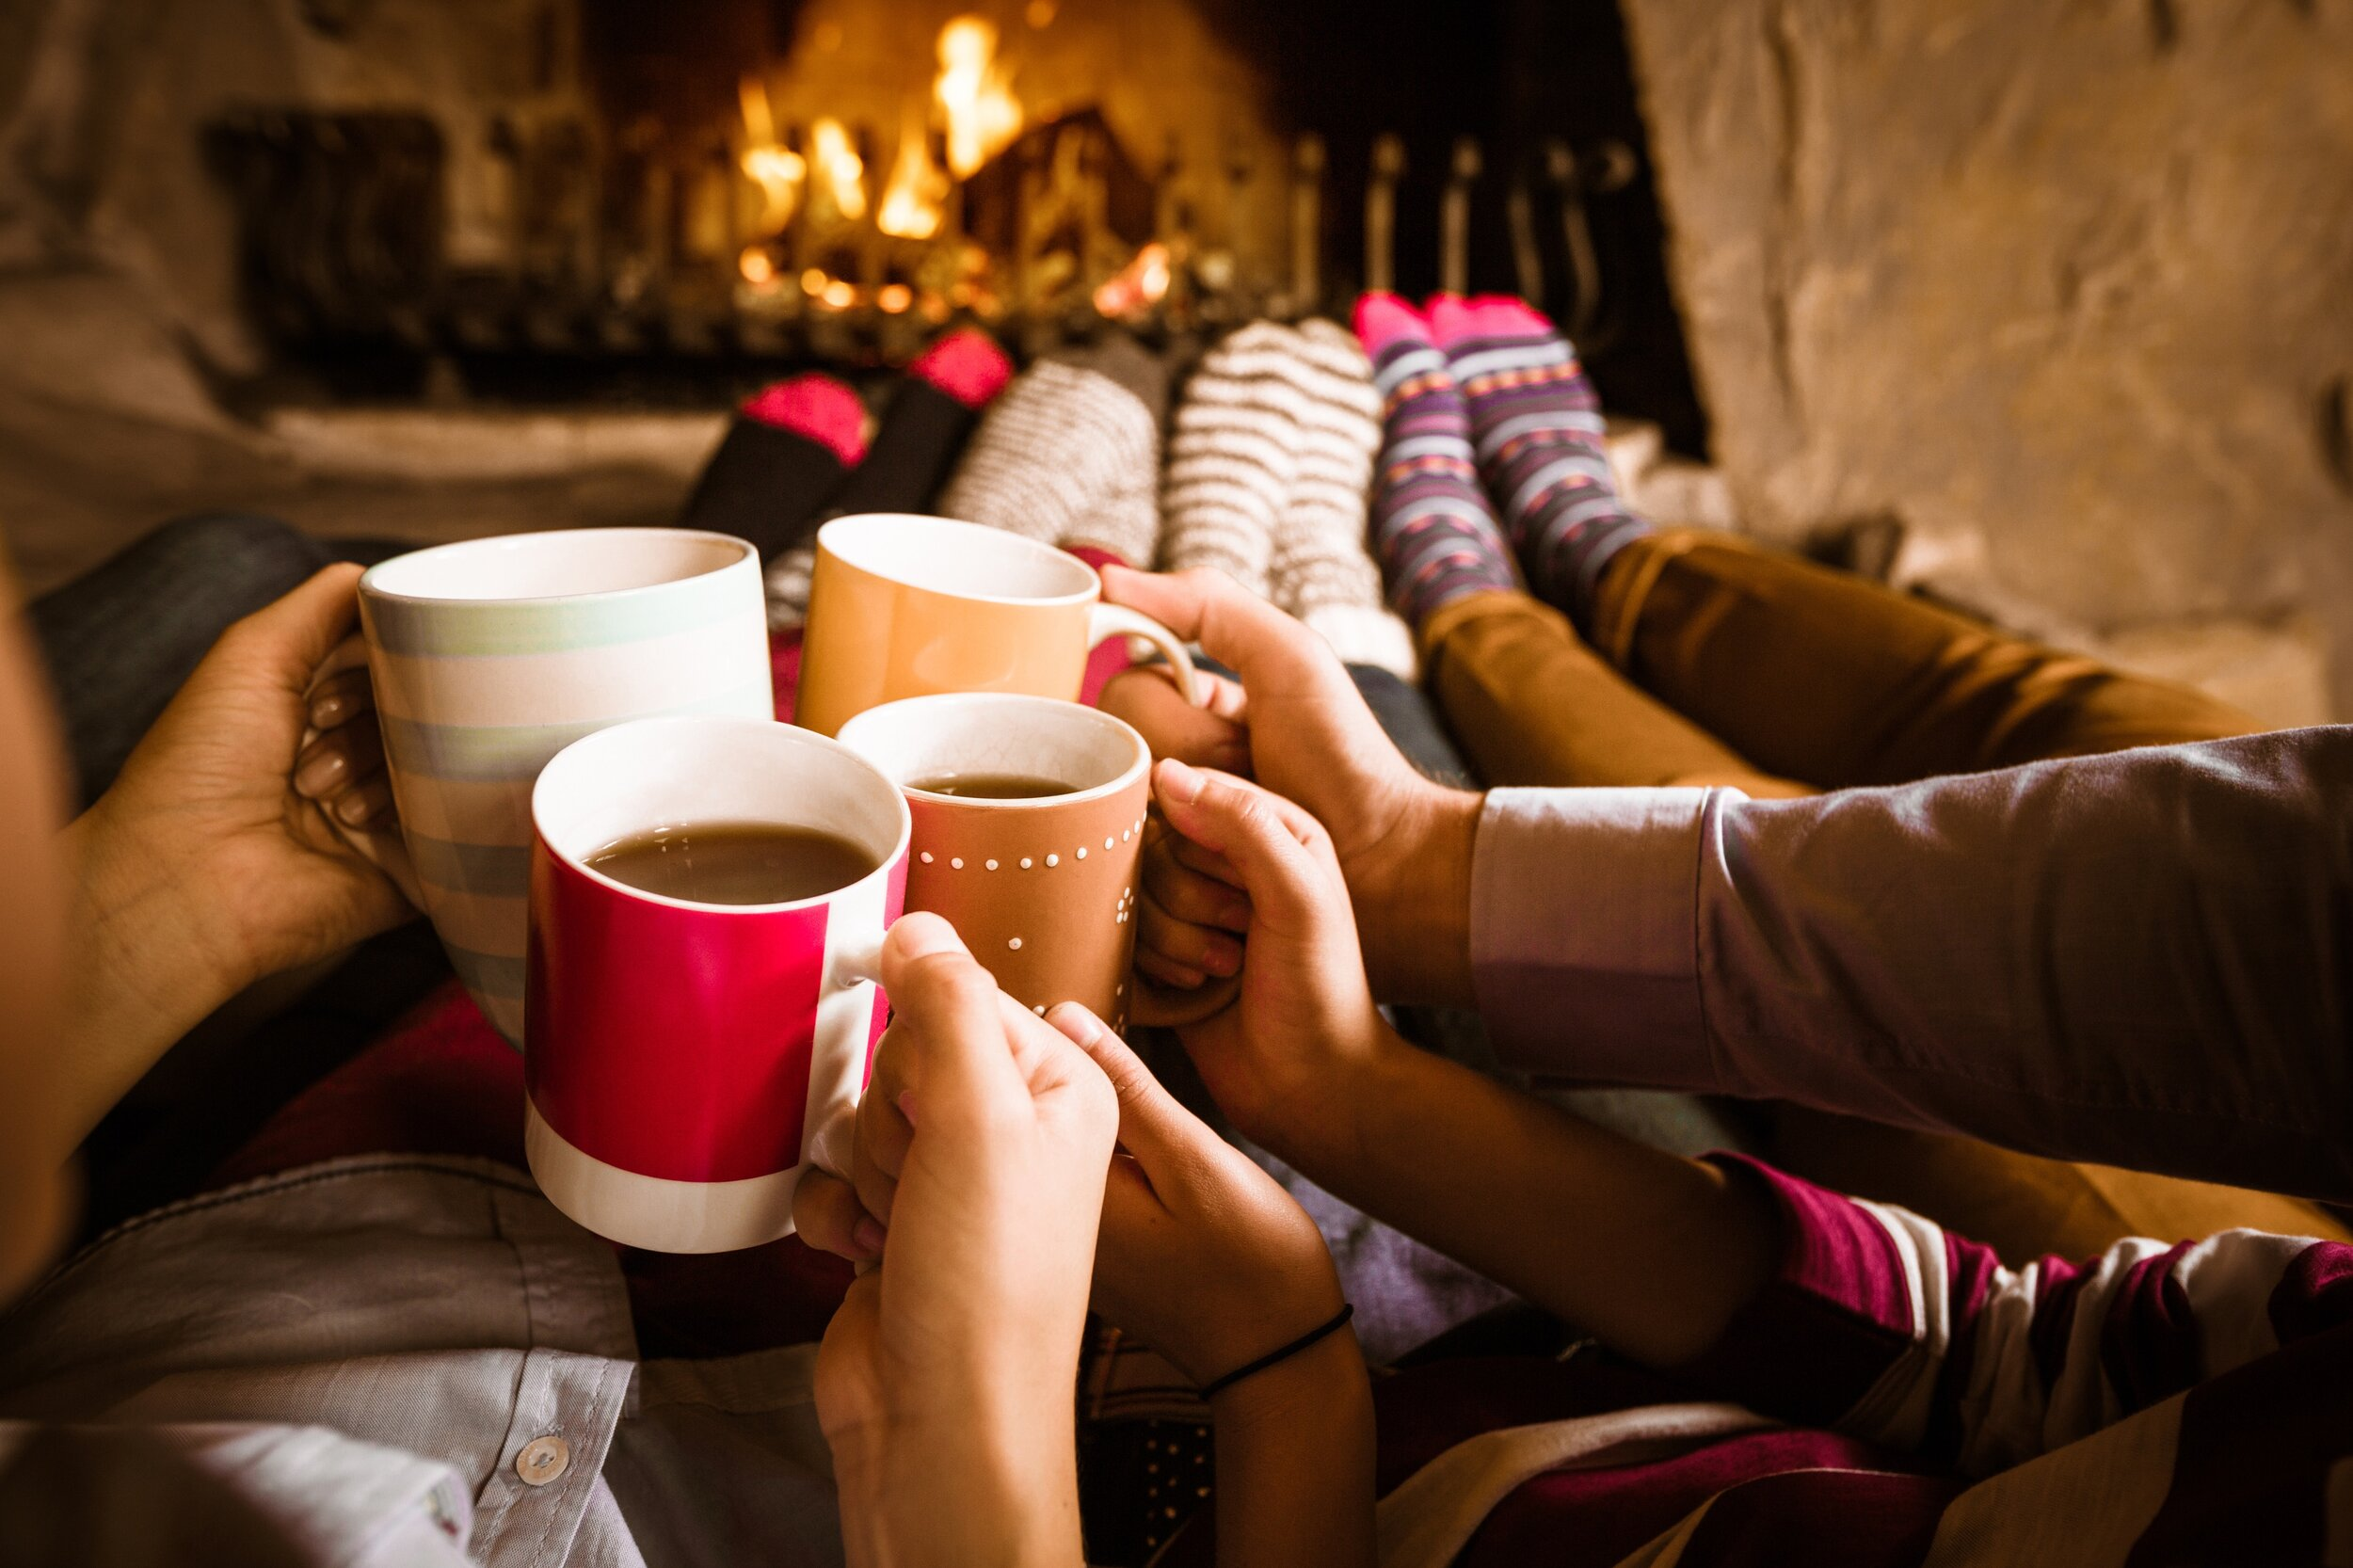 The Art of Practicing Hygge - November 10, 2019 1-2pmNamaste Studios and Forest City Float